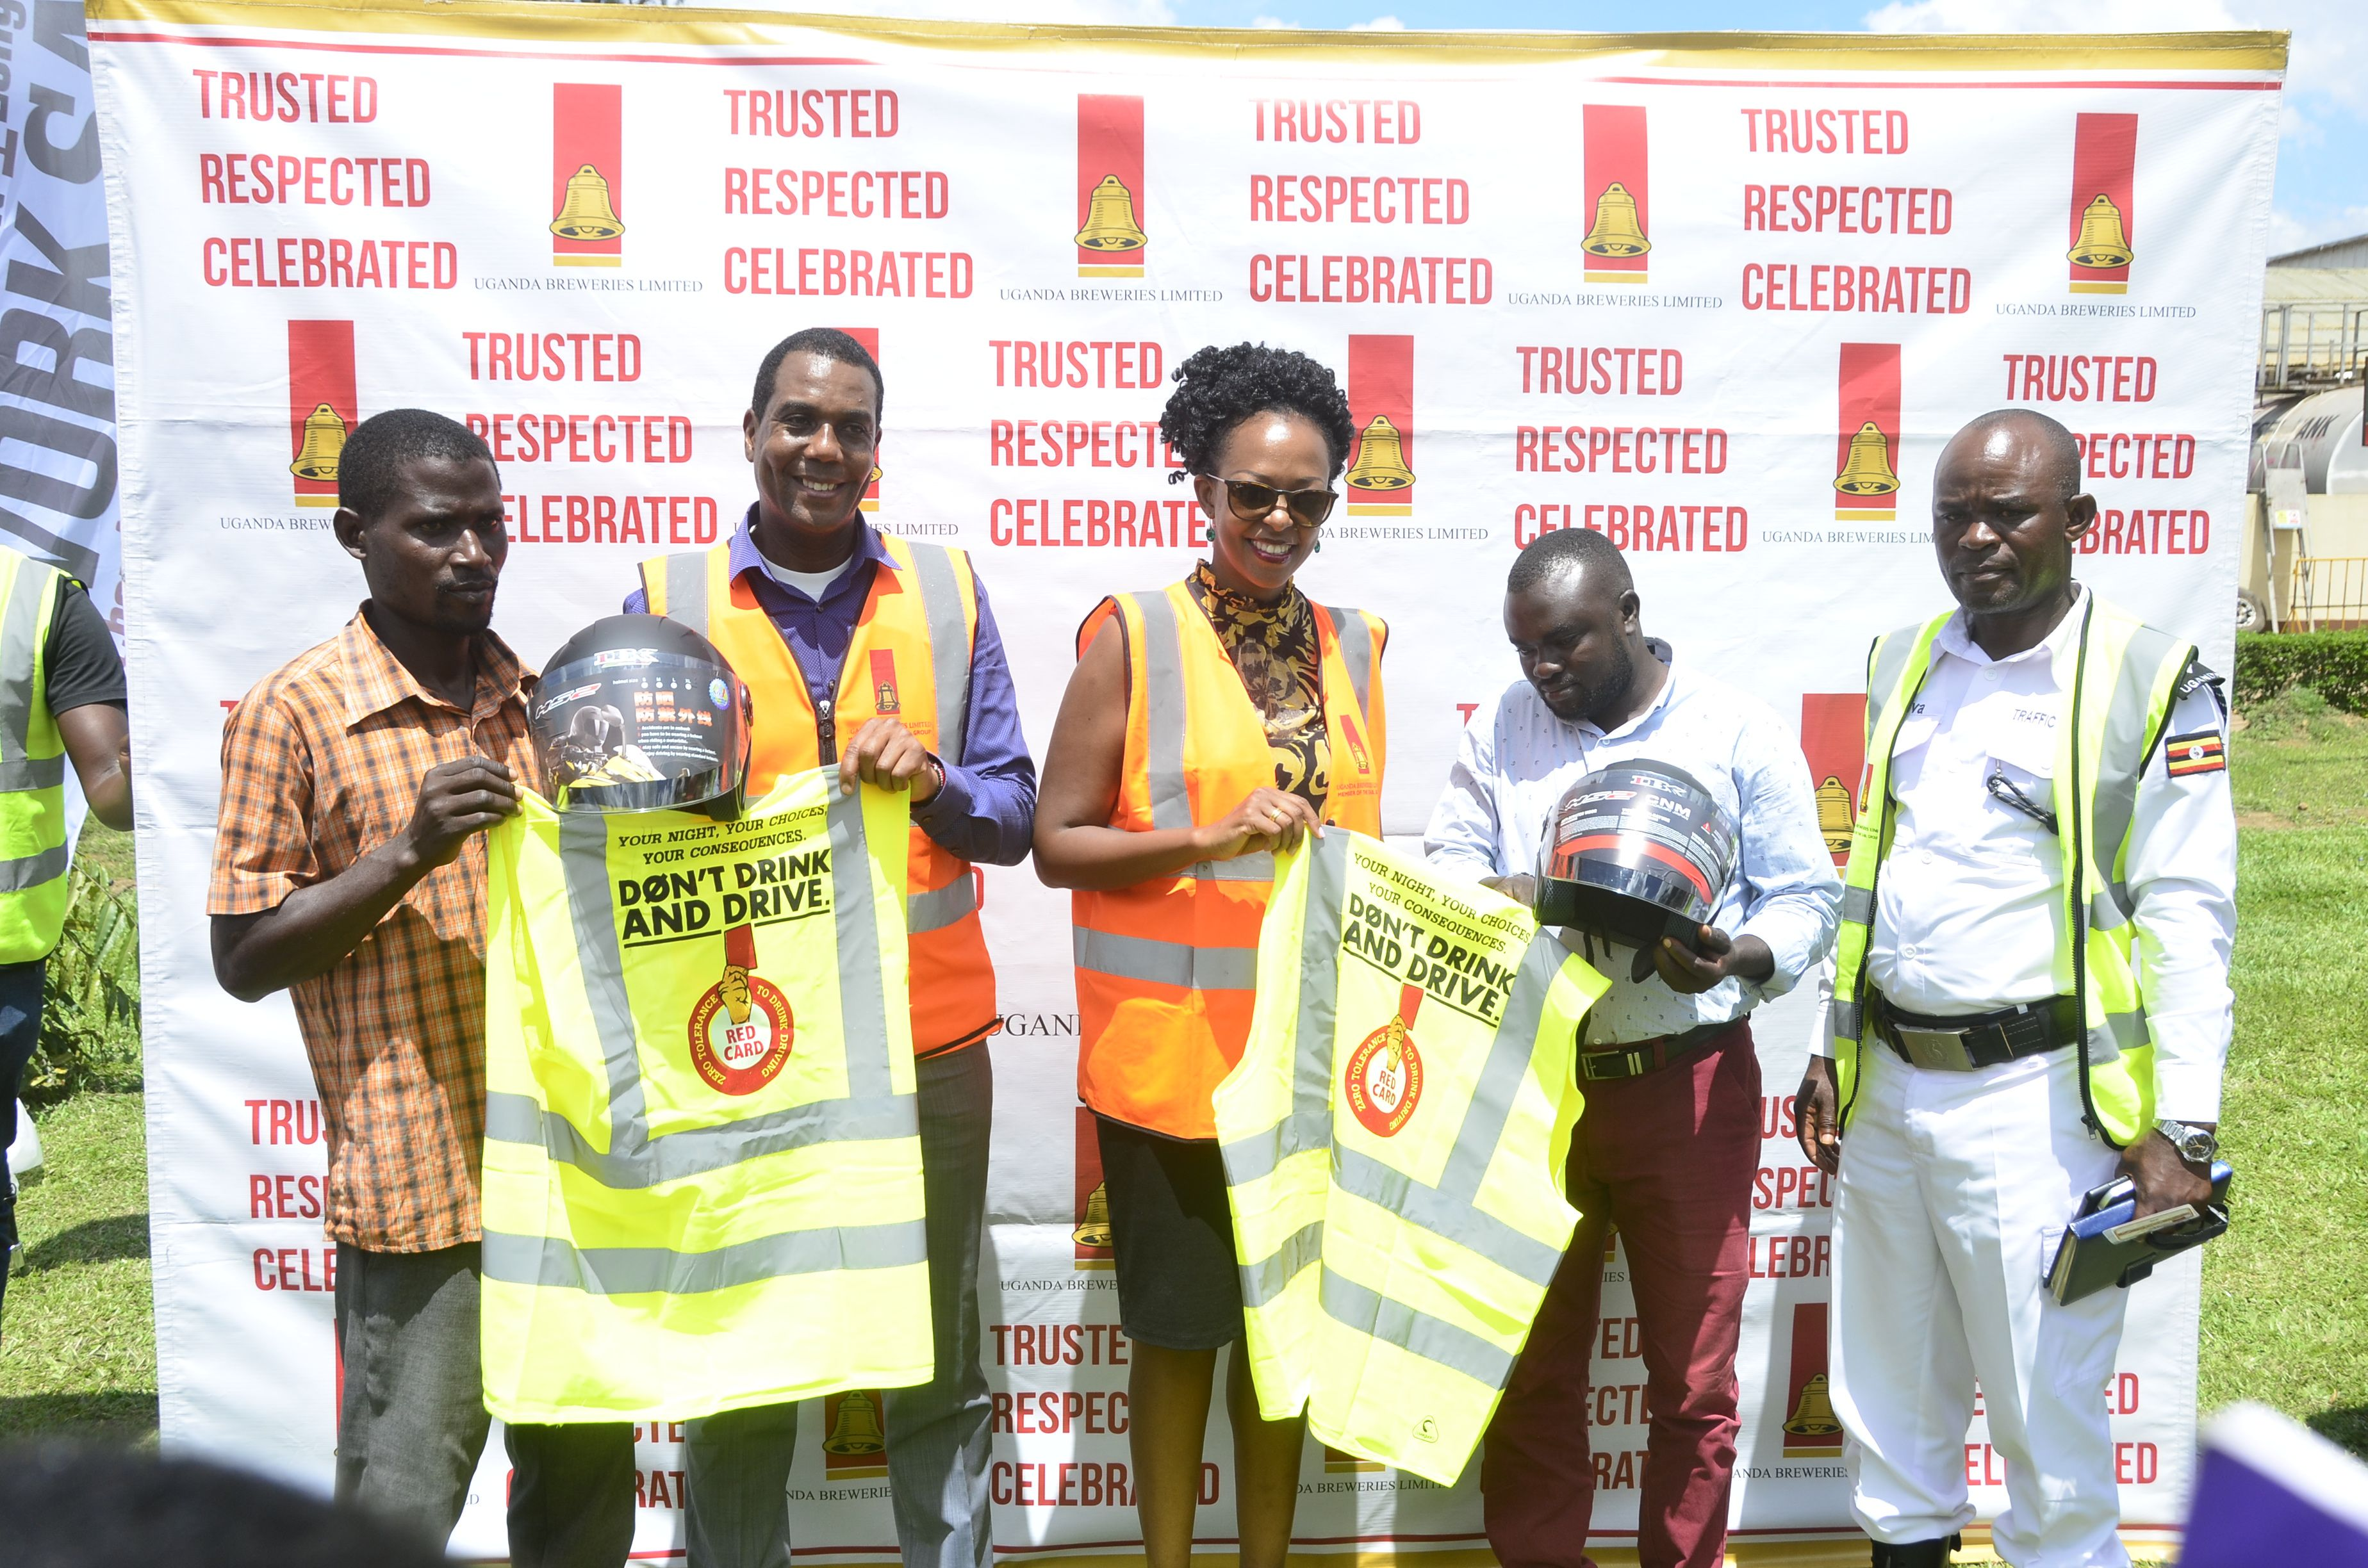 Boda Boda riders tipped on Road Safety Safety awareness